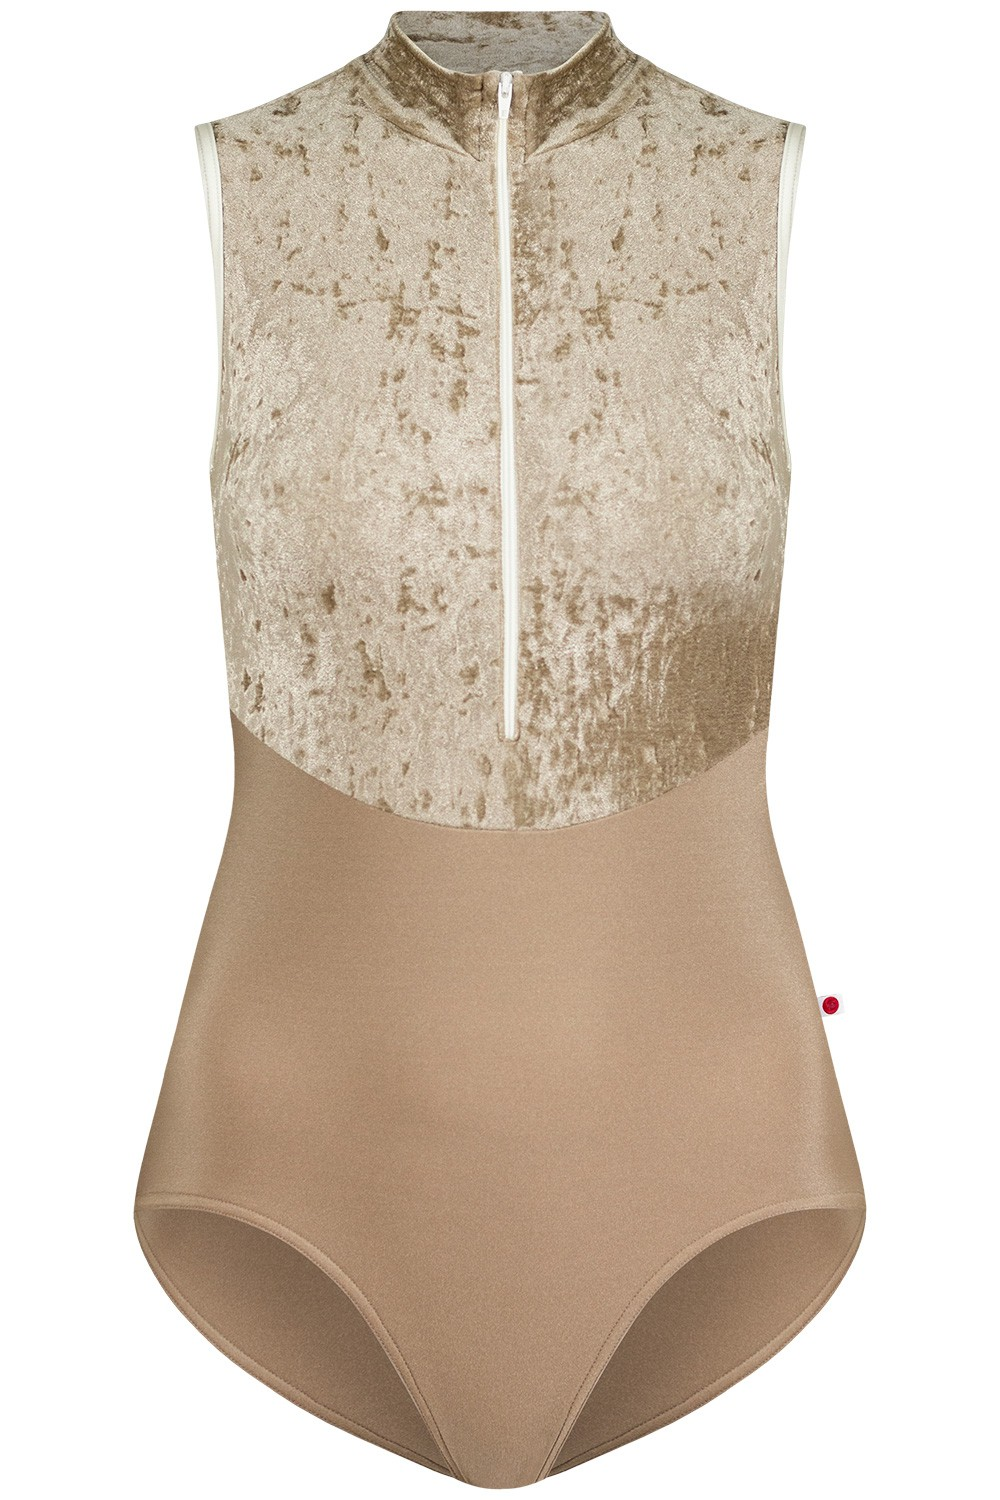 Jessica Duo N-Toffee, V-Toffee with N-Antique trim and zipper